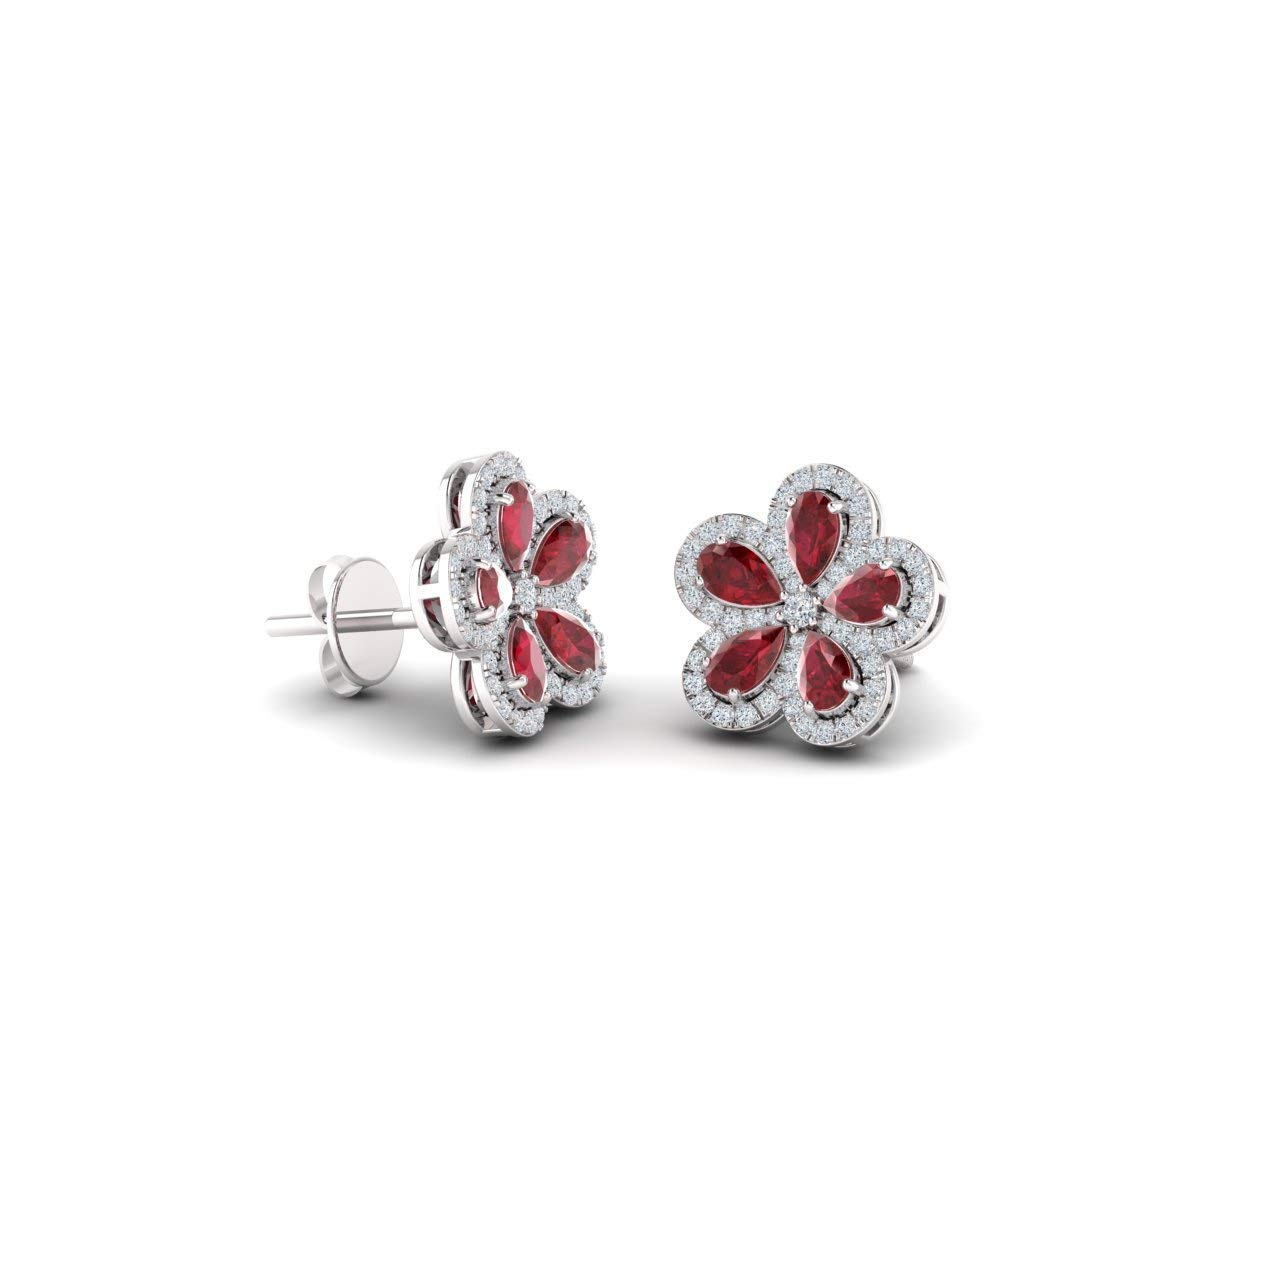 Diamondere Natural and Certified Gemstone and Diamond Floral Earrings in 14K White Gold | 2.85 Carat Earrings for Women